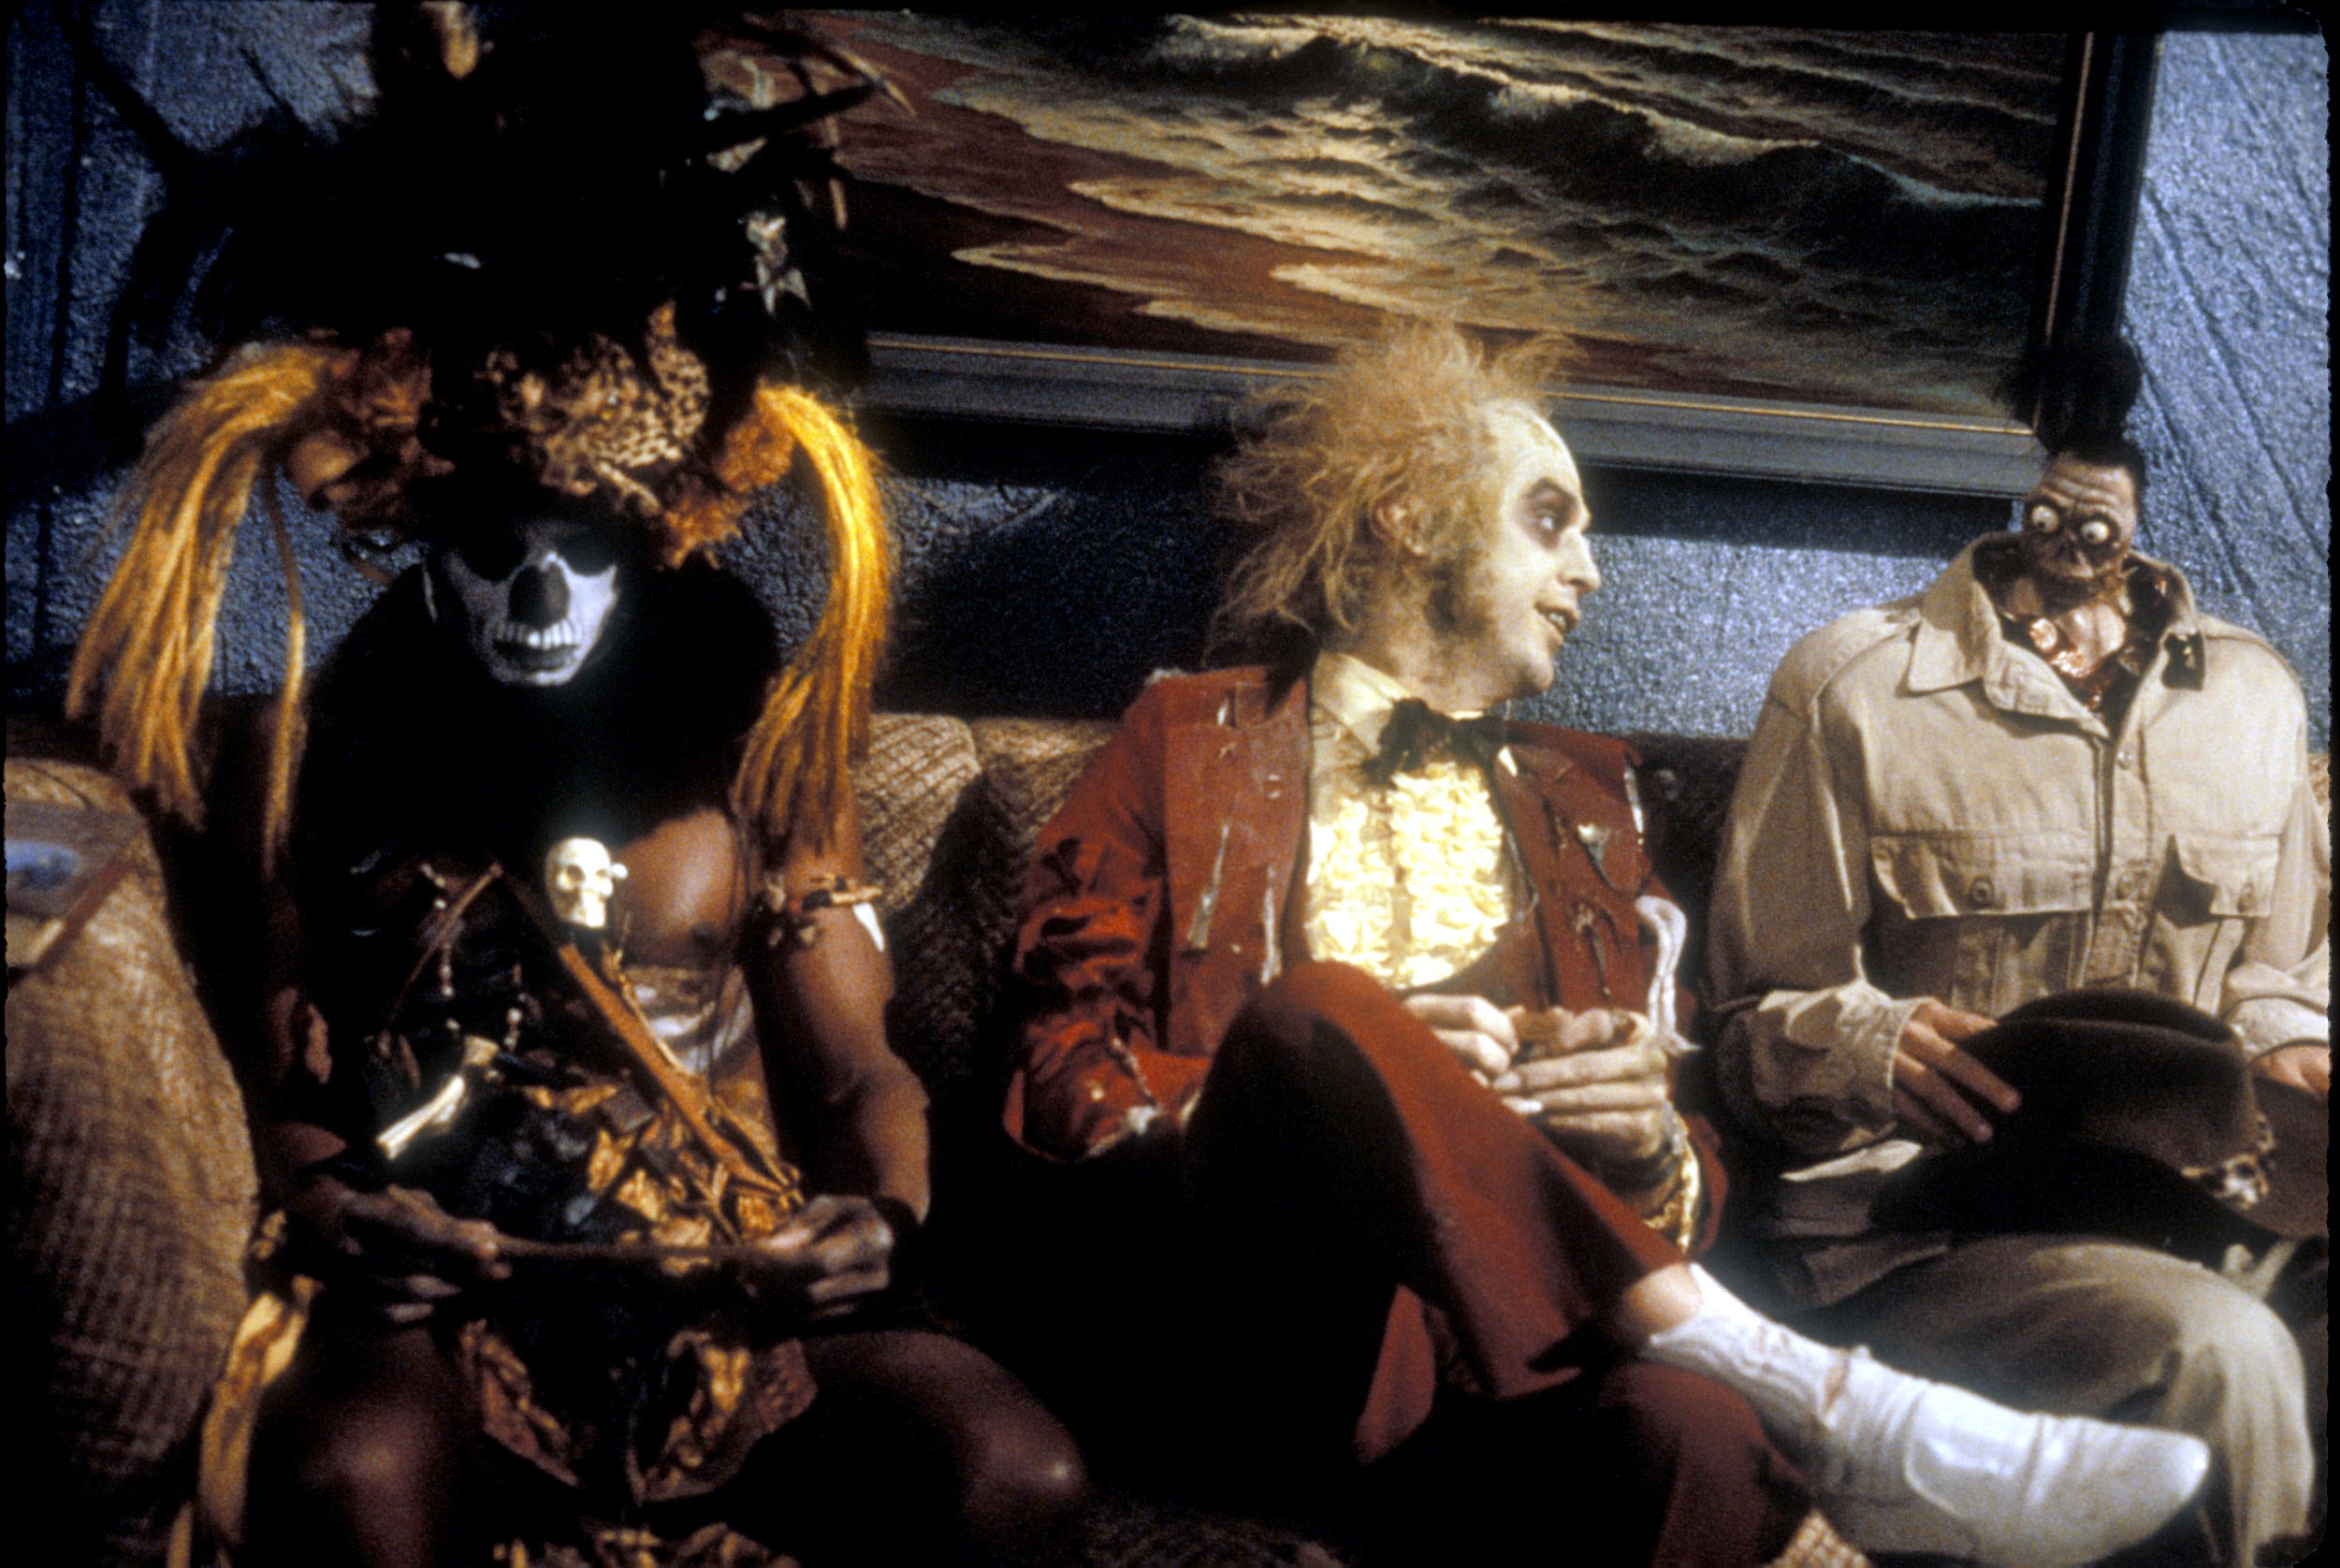 Beetlejuice 2': Is that Tim Burton sequel ever going to happen?